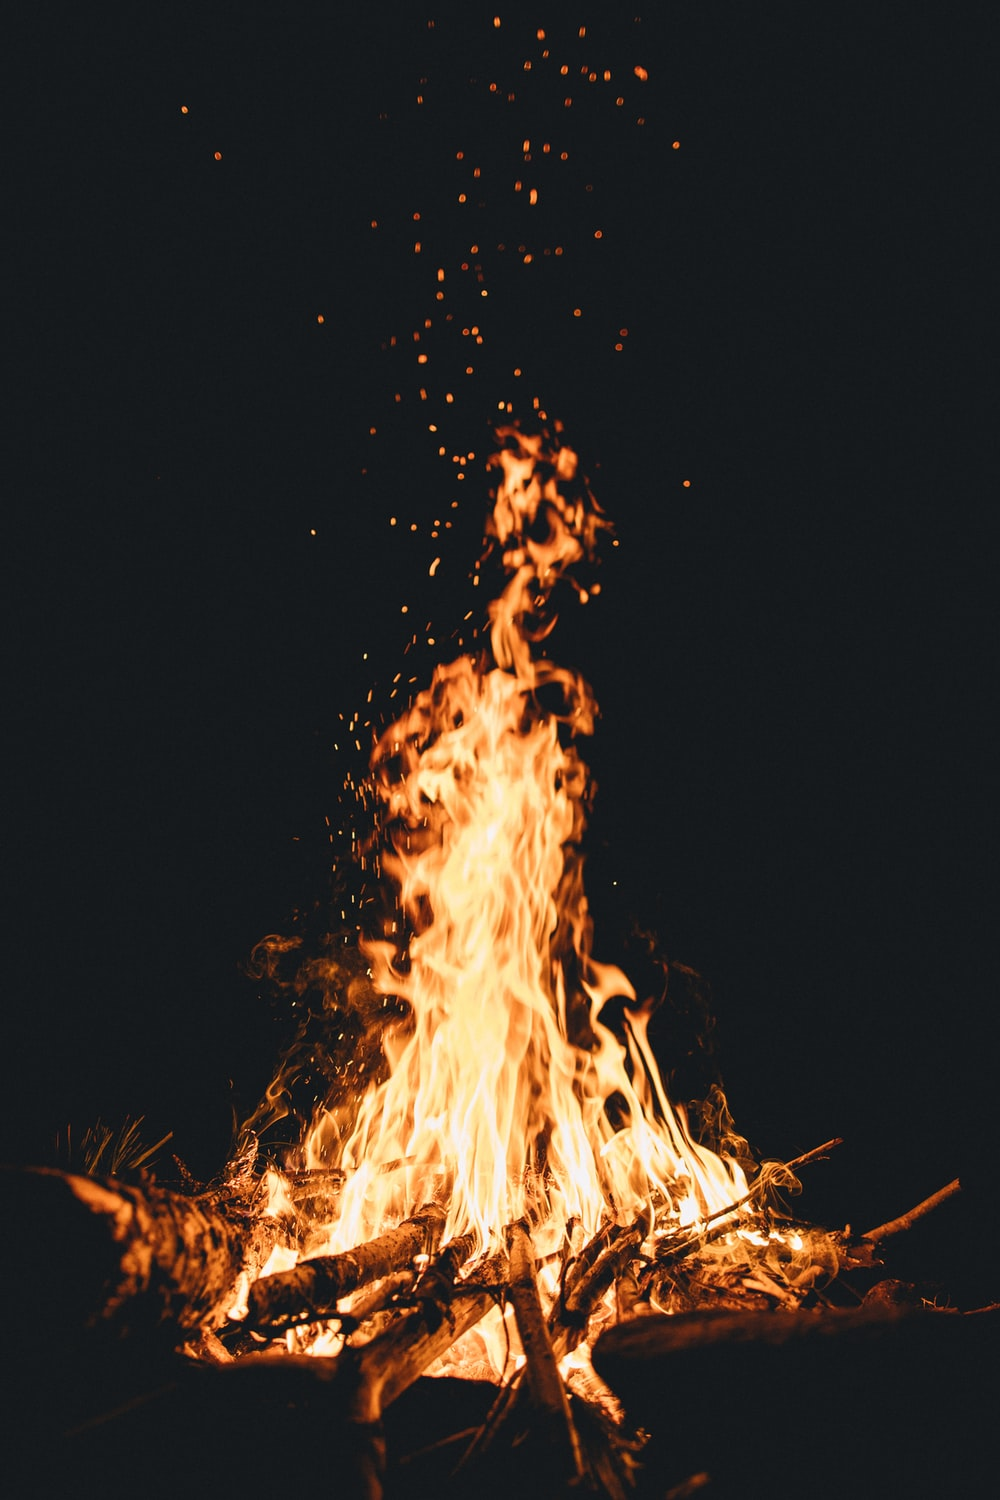 fire during nighttime